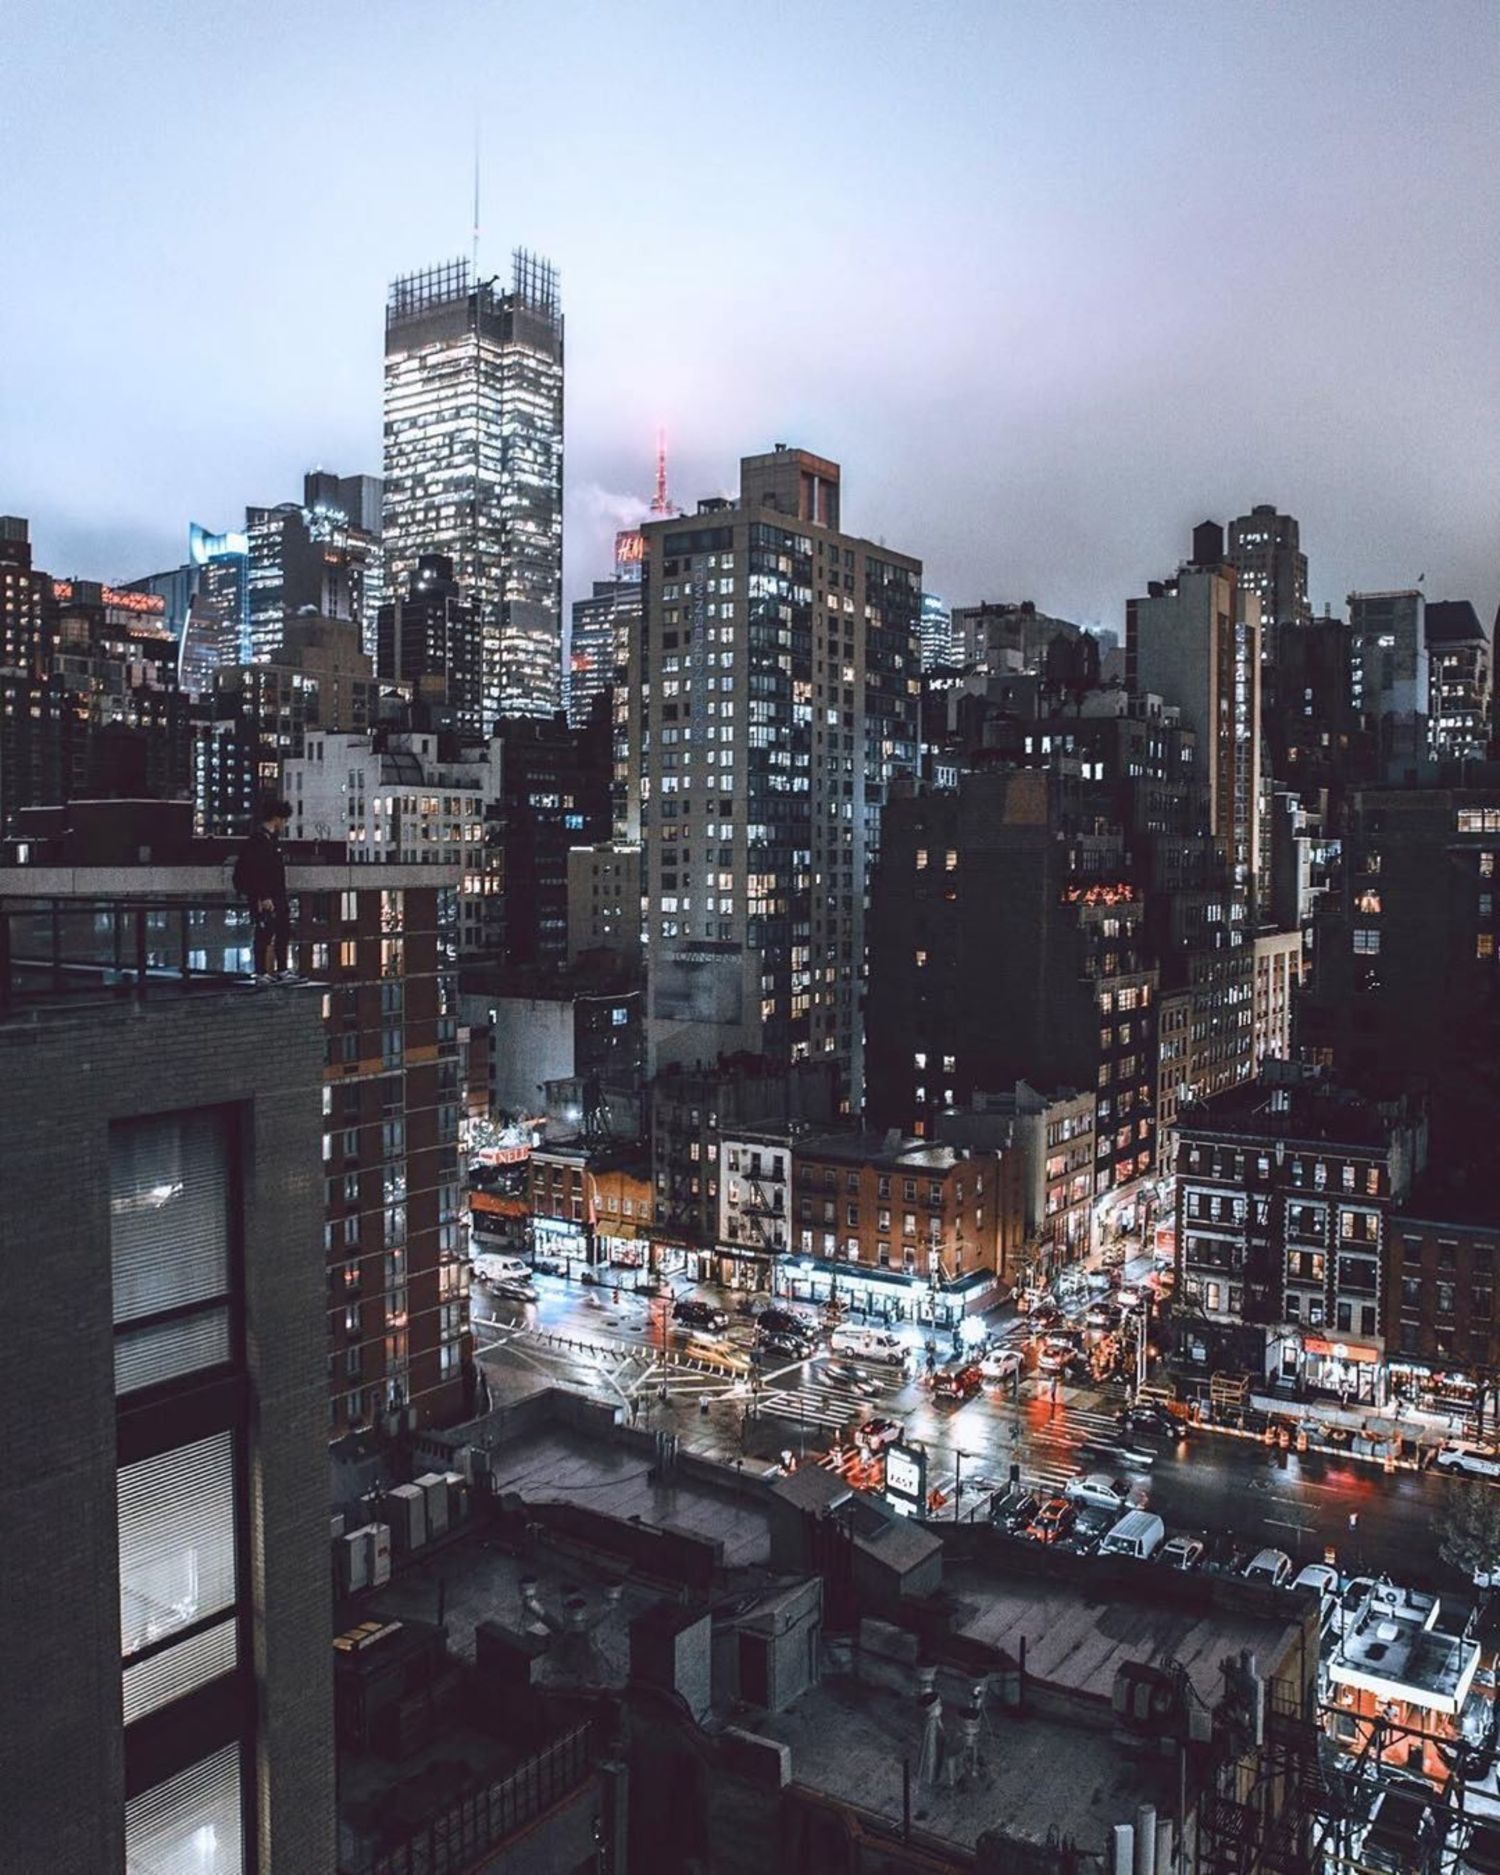 New York, New York. Photo via @raves_ #viewingnyc #nyc #newyork #newyorkcity